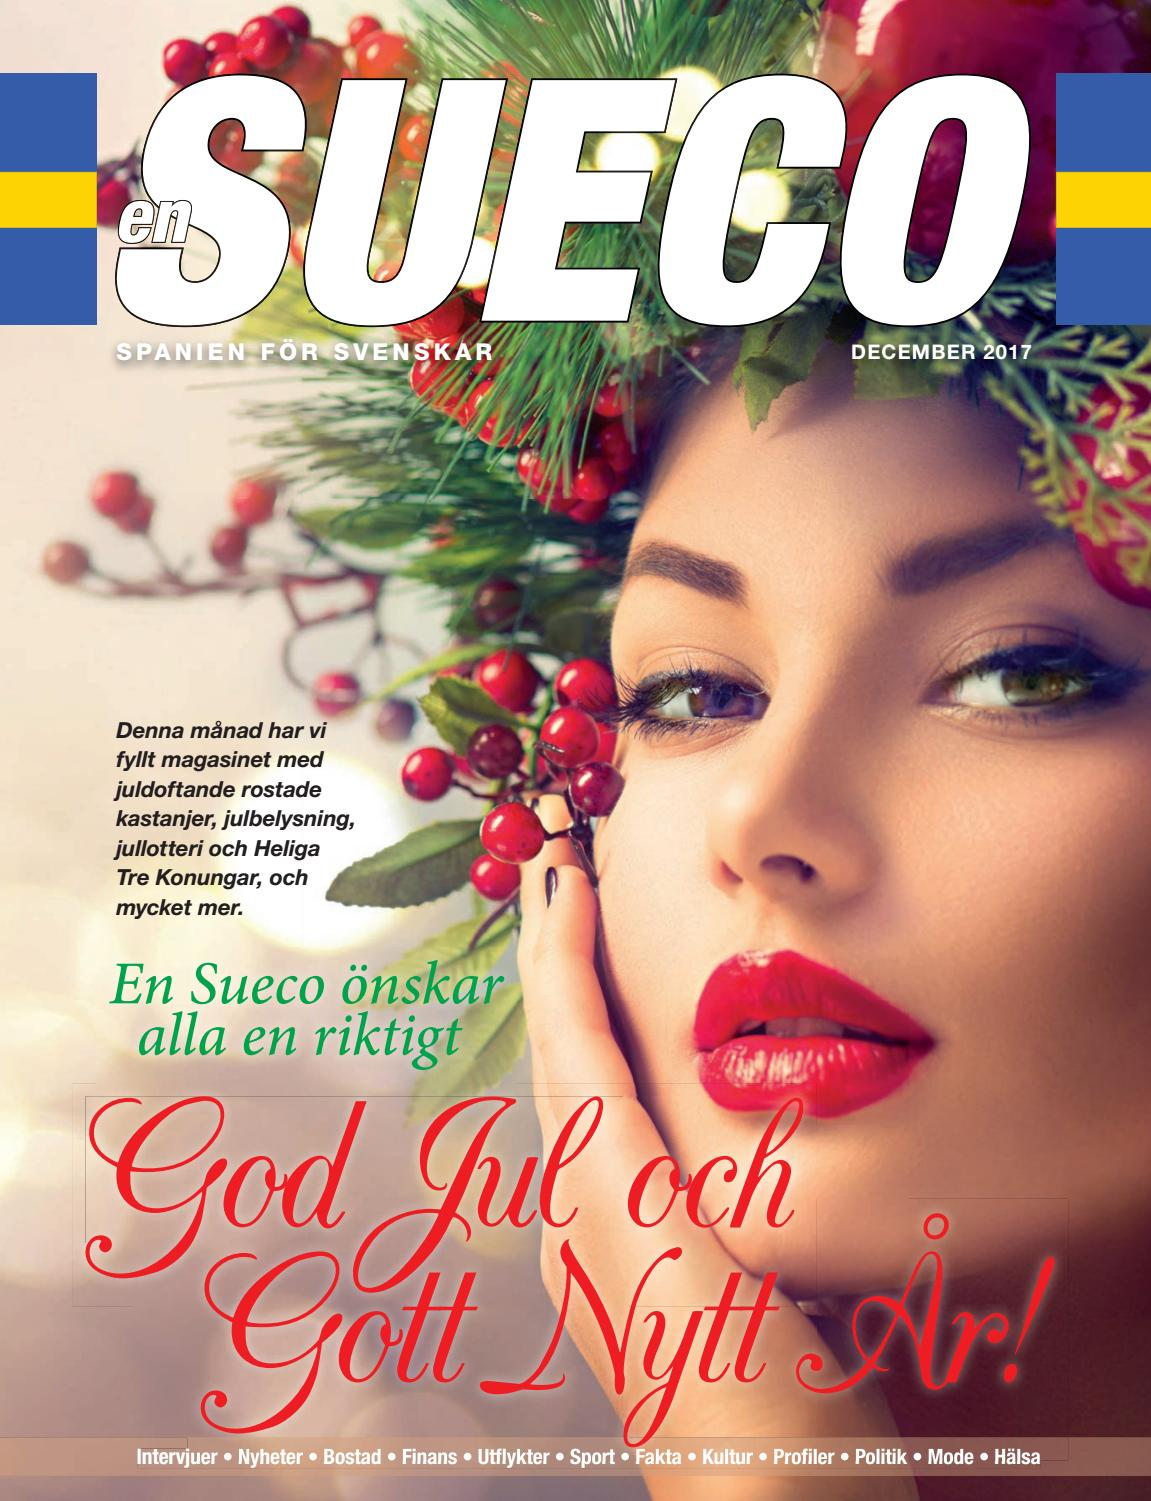 En Sueco December 2017 by Norrbom Marketing - issuu d9abba9a17cf8